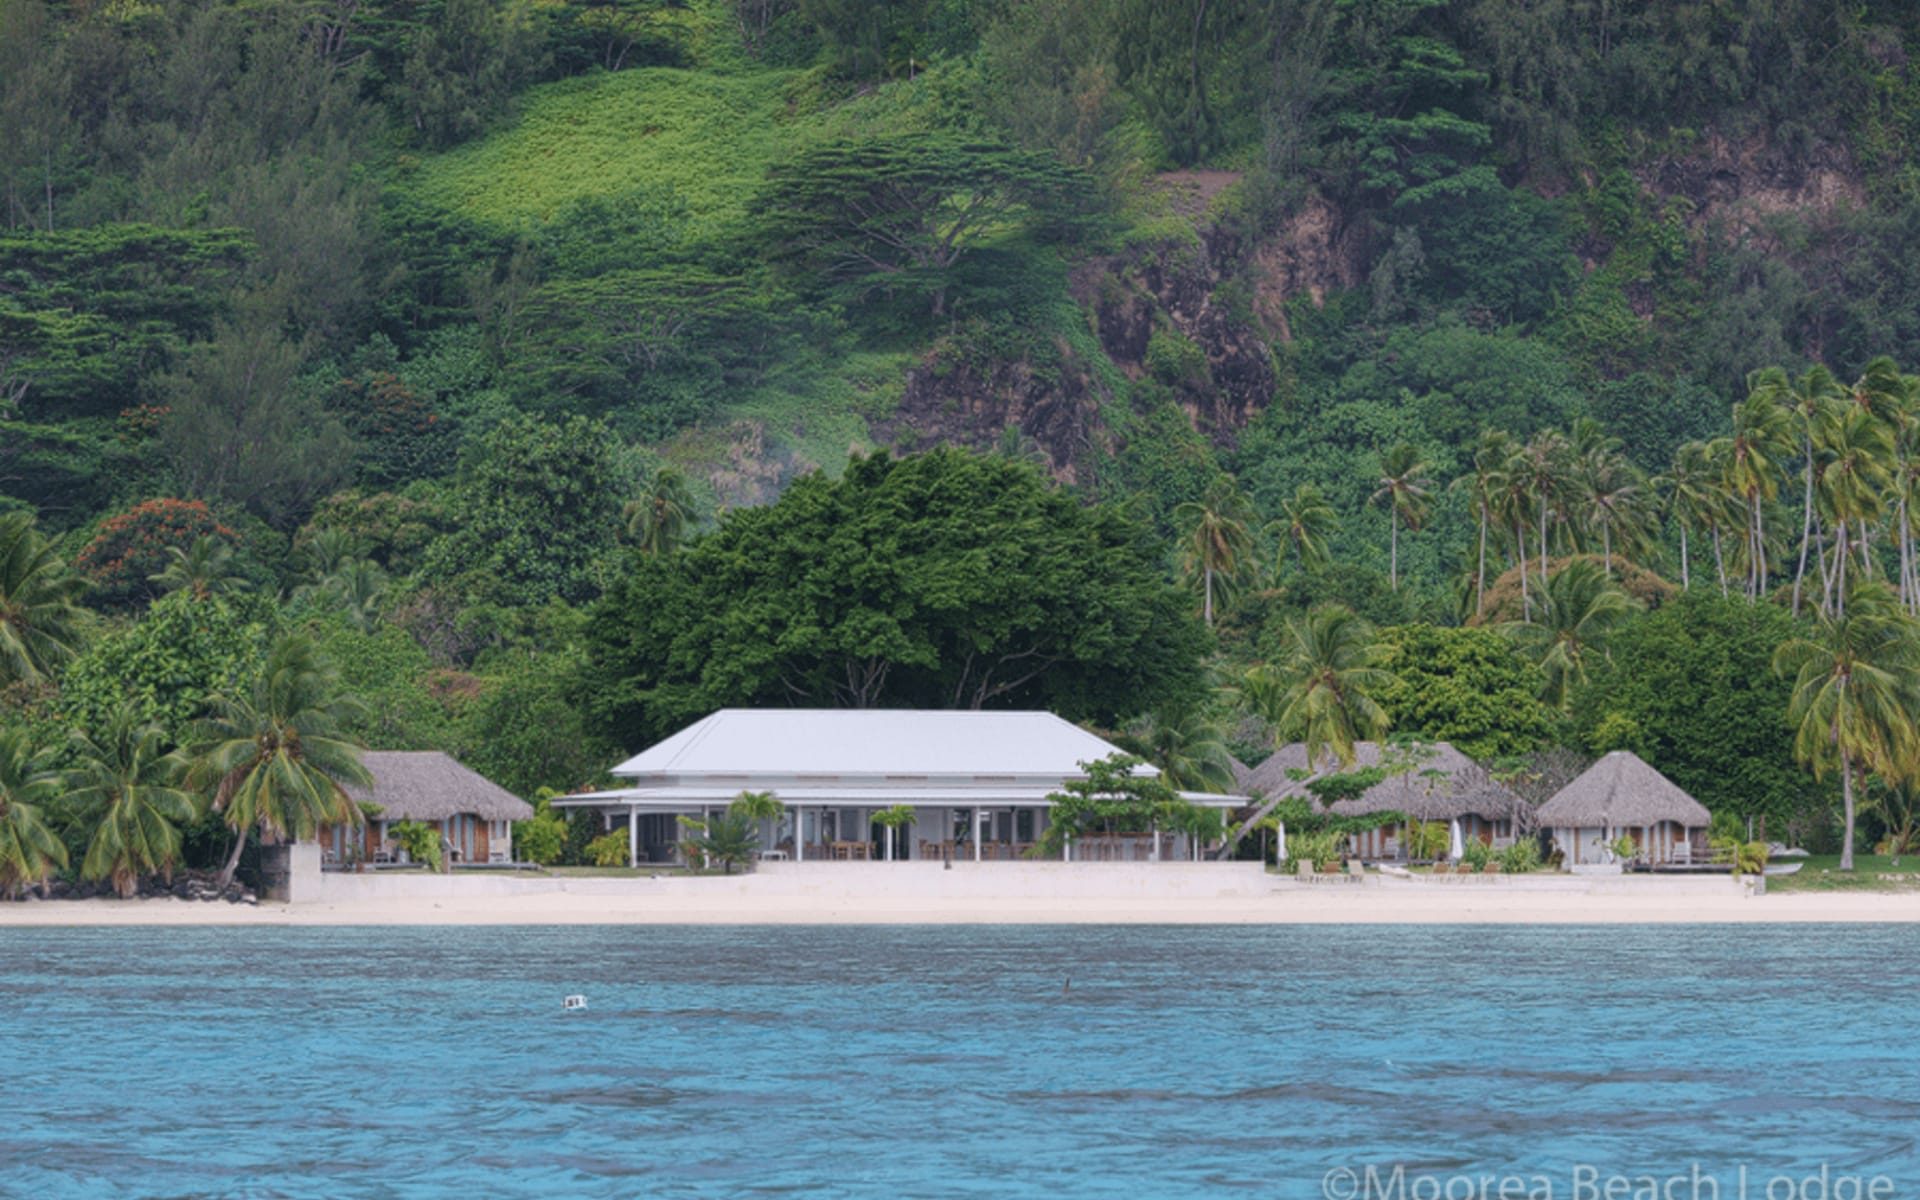 Moorea Beach Lodge:  Moorea Beach Lodge (2)